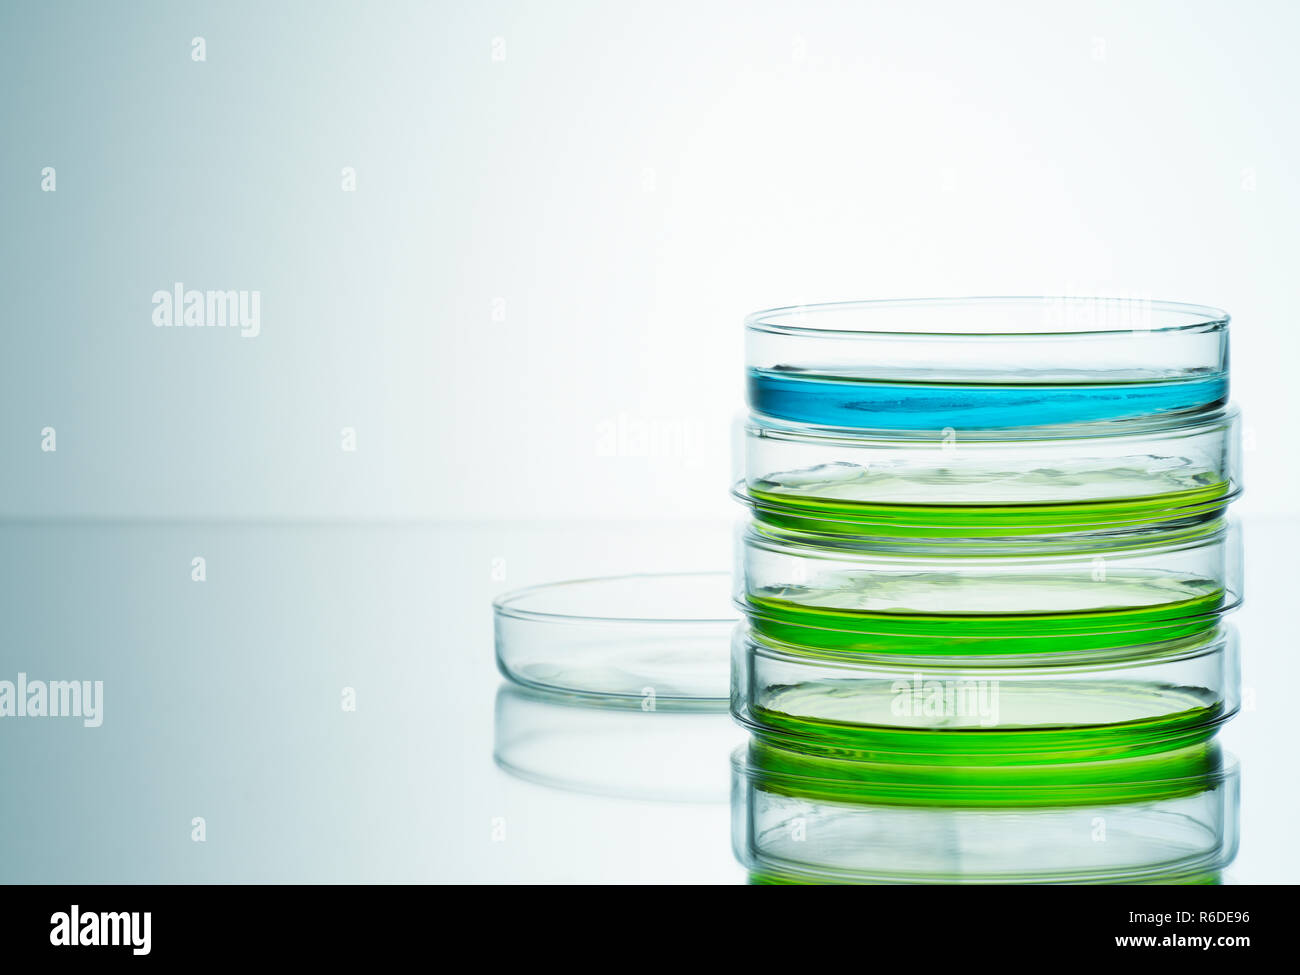 Blue and green liquids in petri dishes, plain background - Stock Image